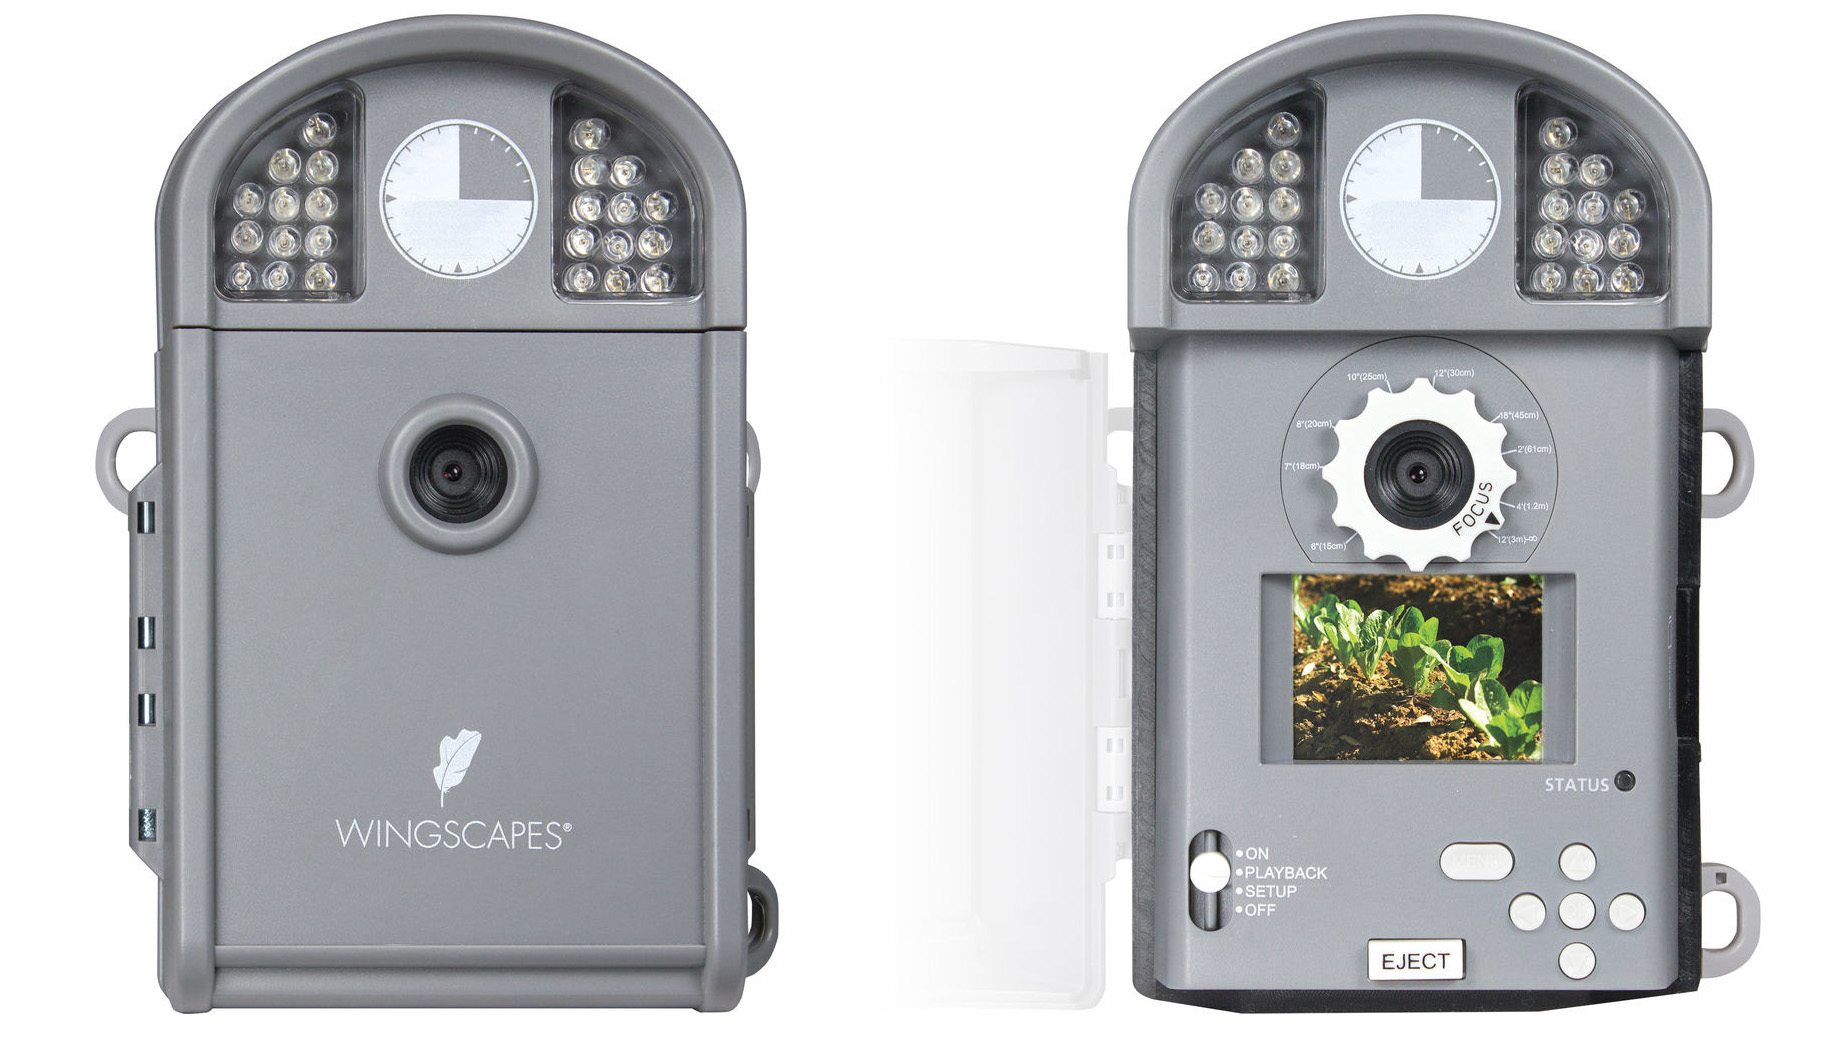 Moultrie camera for long projects